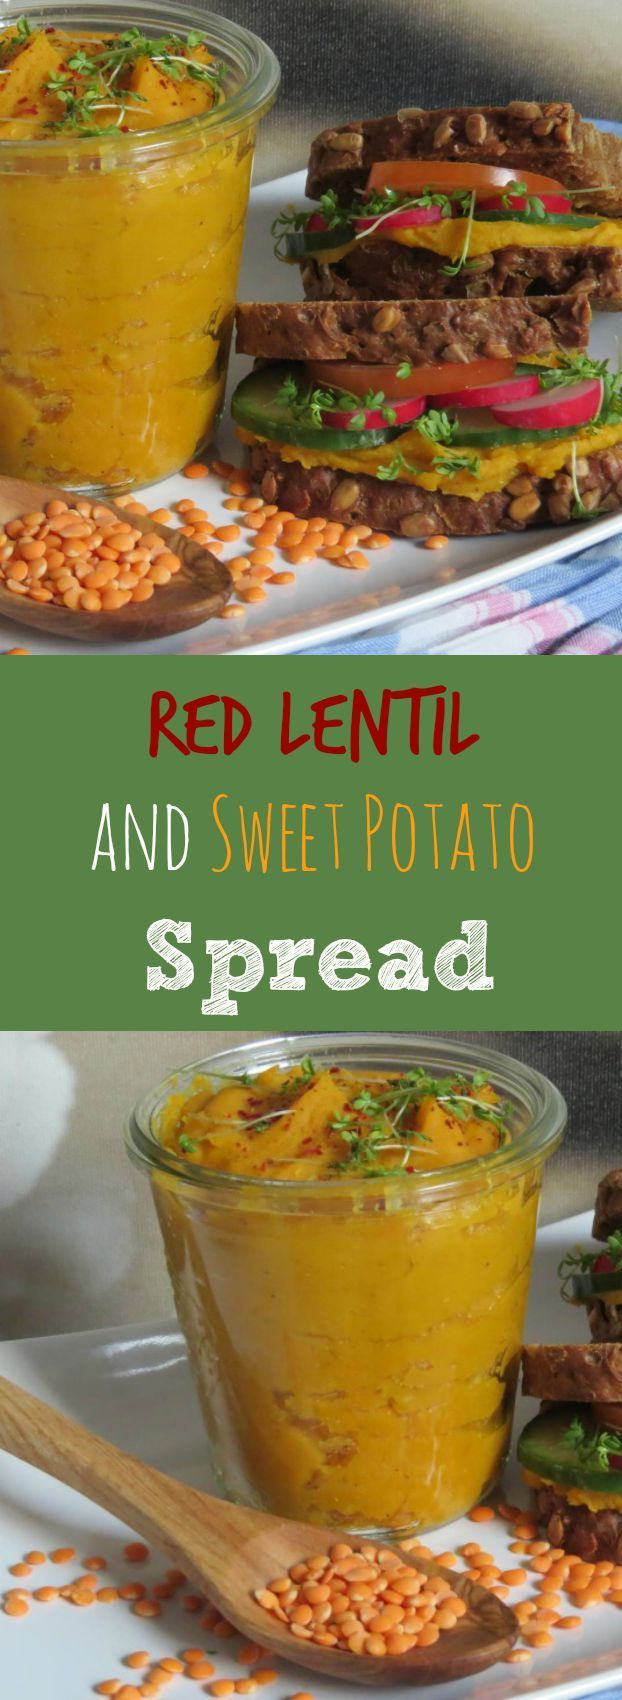 This #vegan red lentil and sweet potato spread is great on sandwiches or as a dip with veggie sticks!